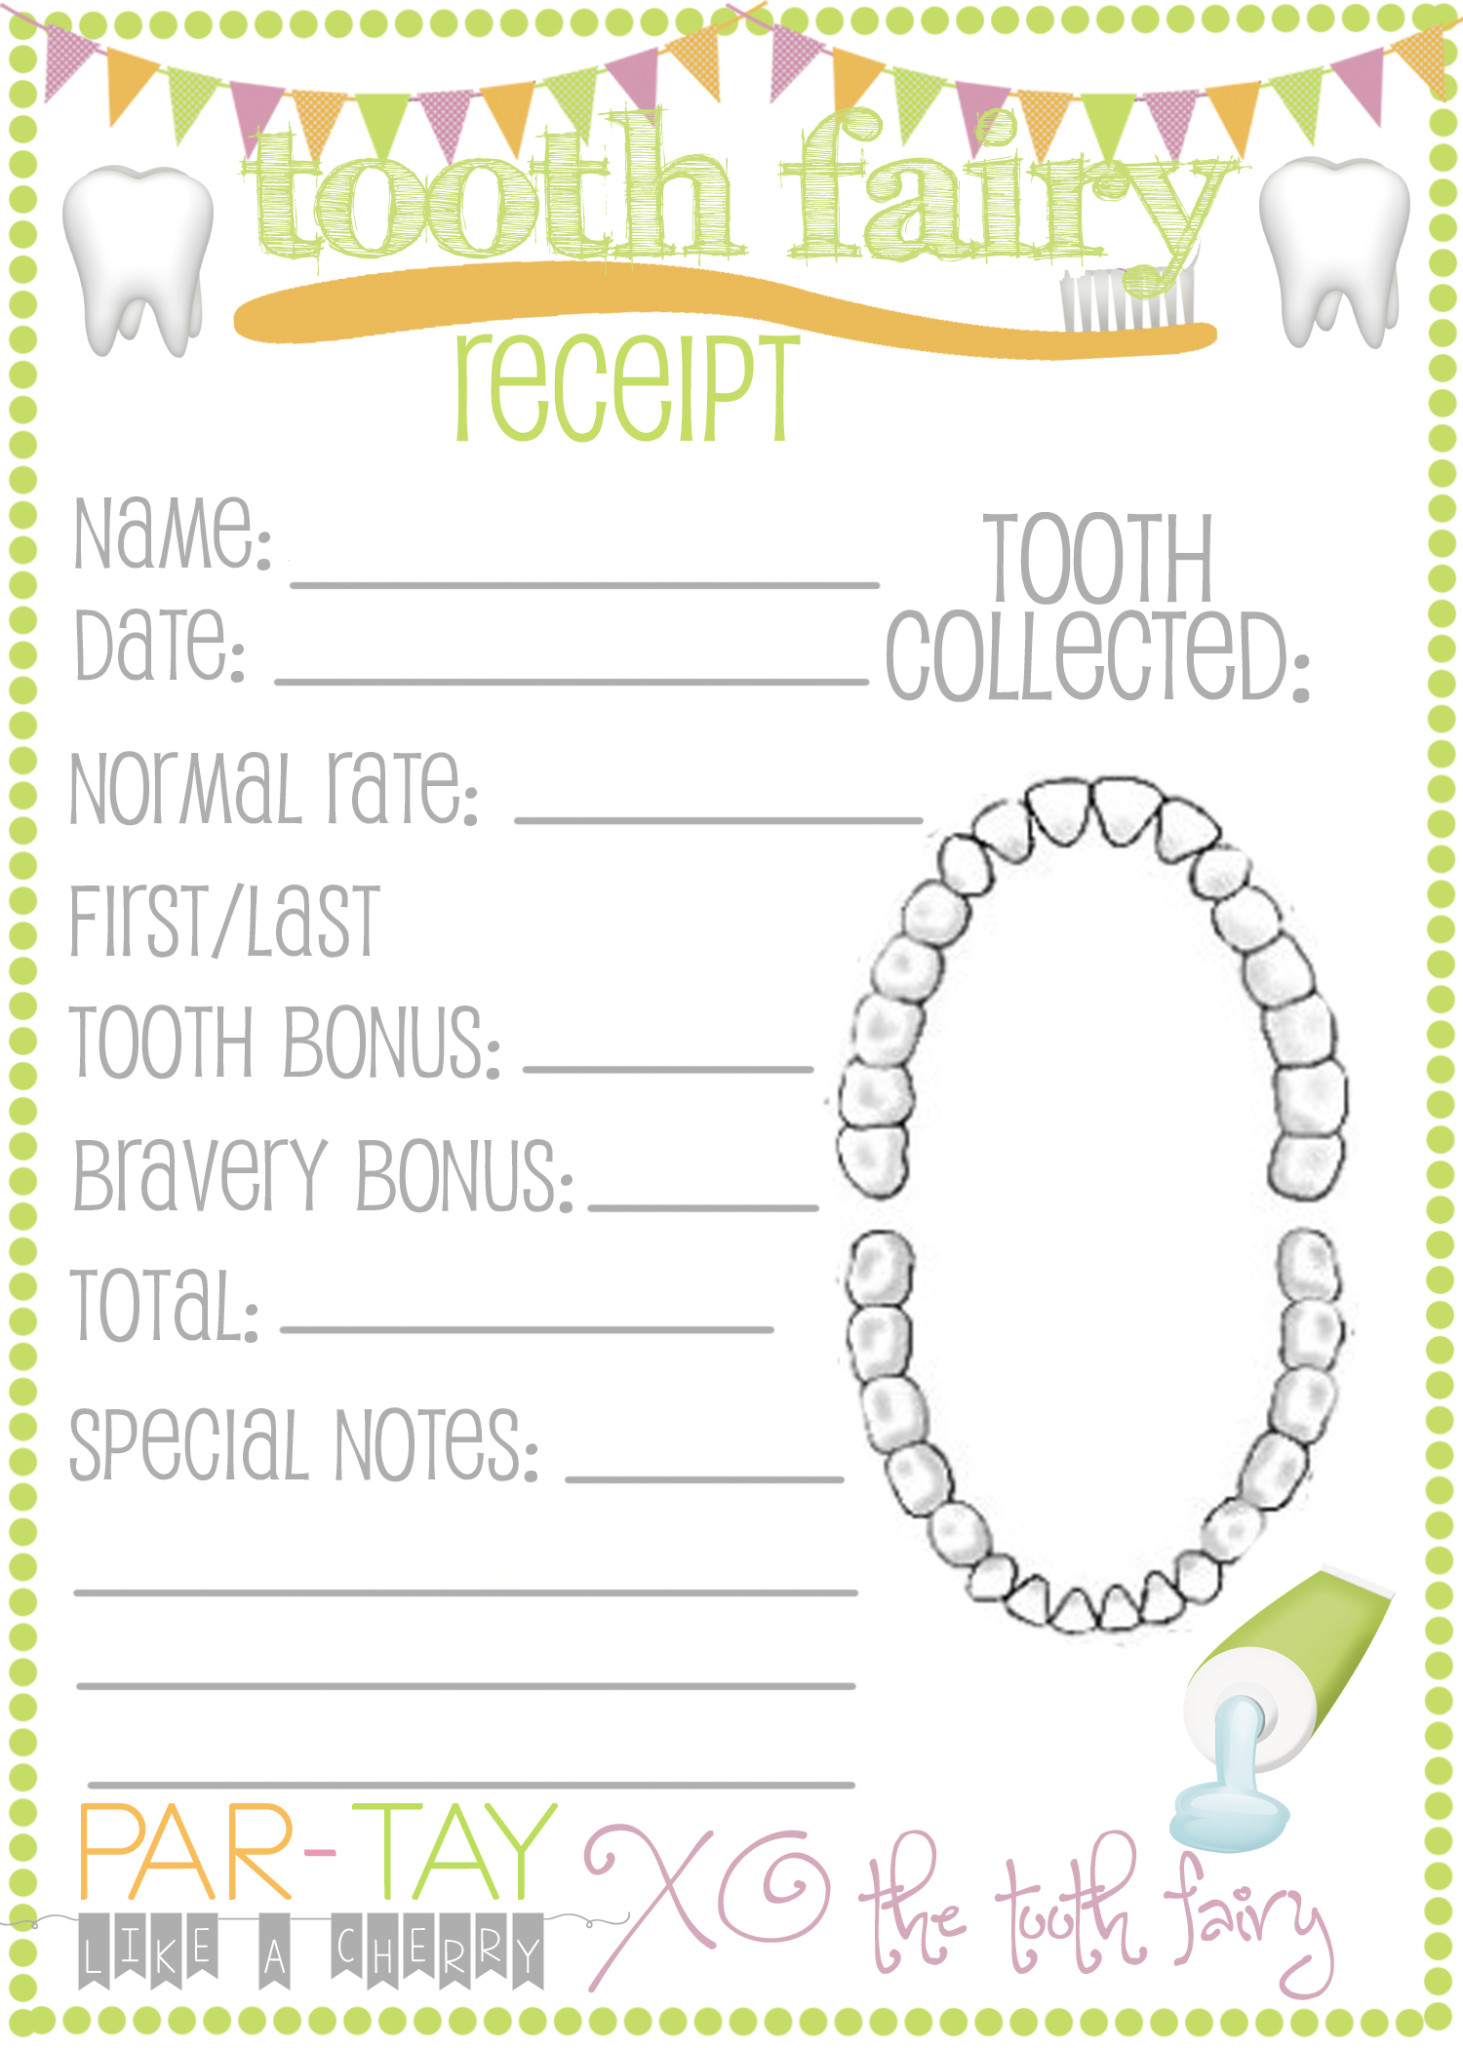 Tooth Fairy Receipts Free Printable